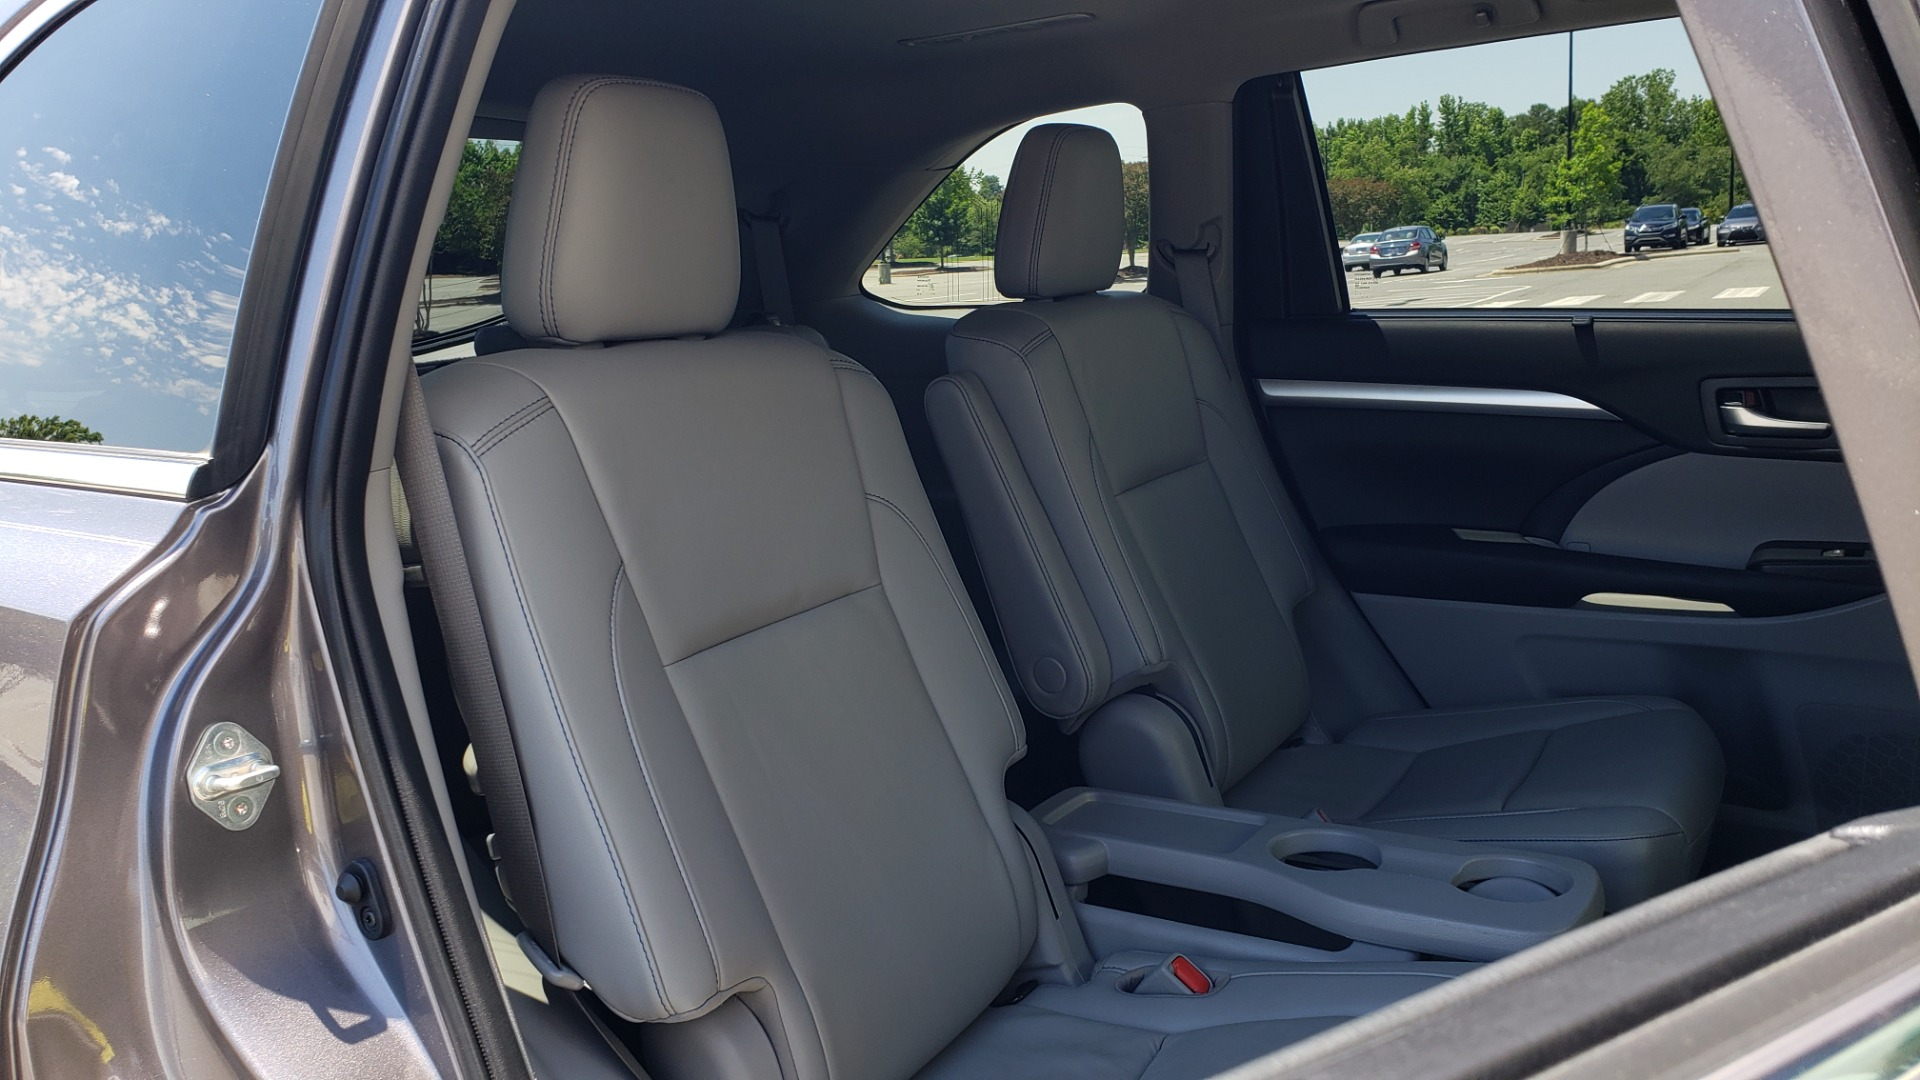 Used 2019 Toyota HIGHLANDER XLE / 3.5L V6 / AWD / LEATHER / 8-SPD AUTO / 1-OWNER for sale $37,500 at Formula Imports in Charlotte NC 28227 73